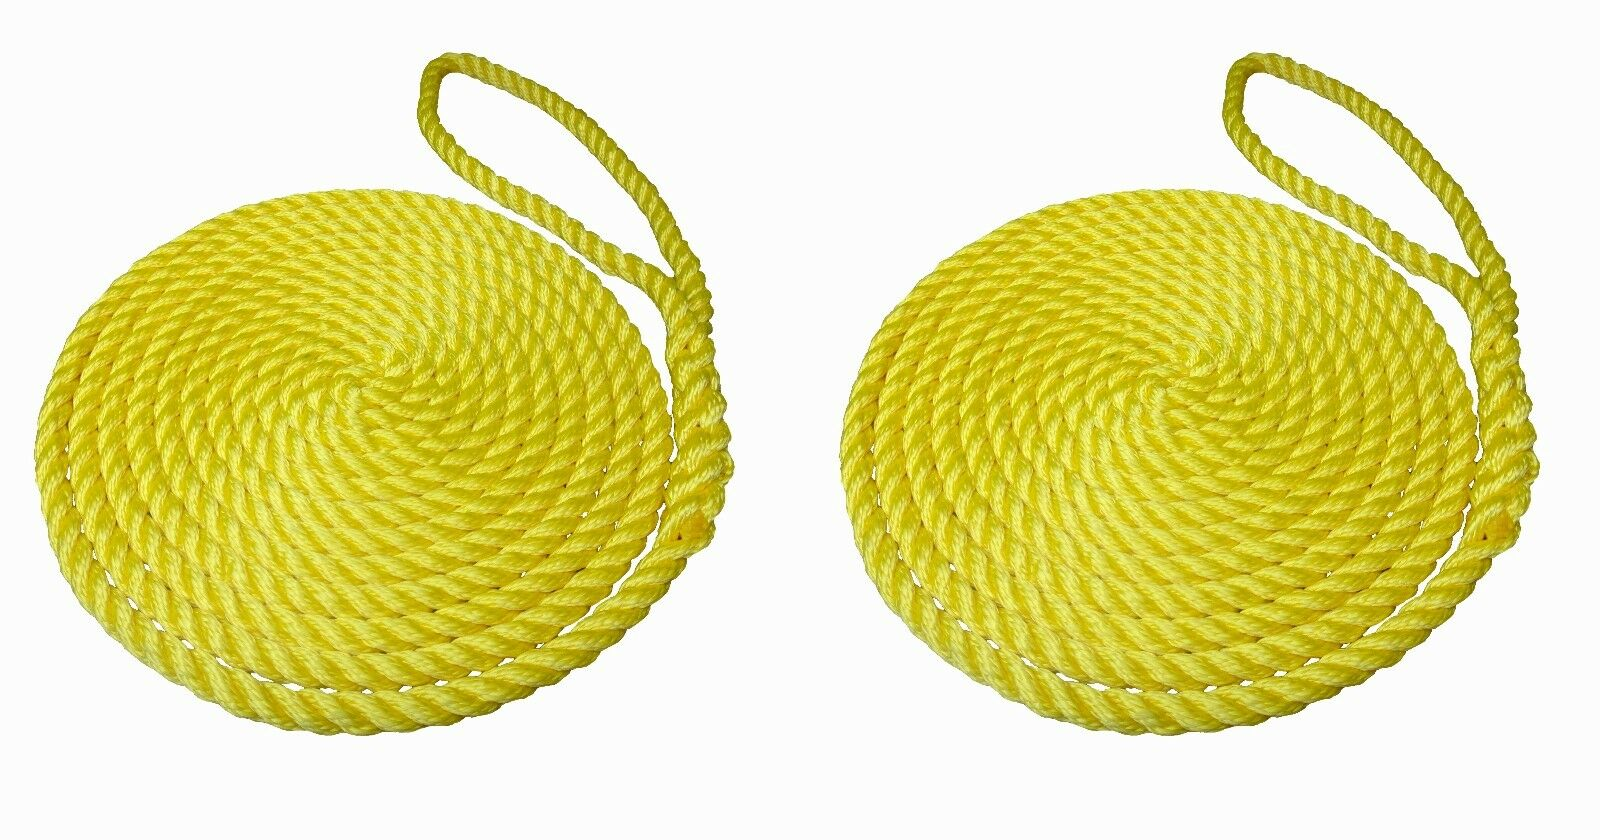 2 x 12 MTS OF 16MM YELLOW SOFTLINE MOORING ROPES   WARPS   LINES BOATS